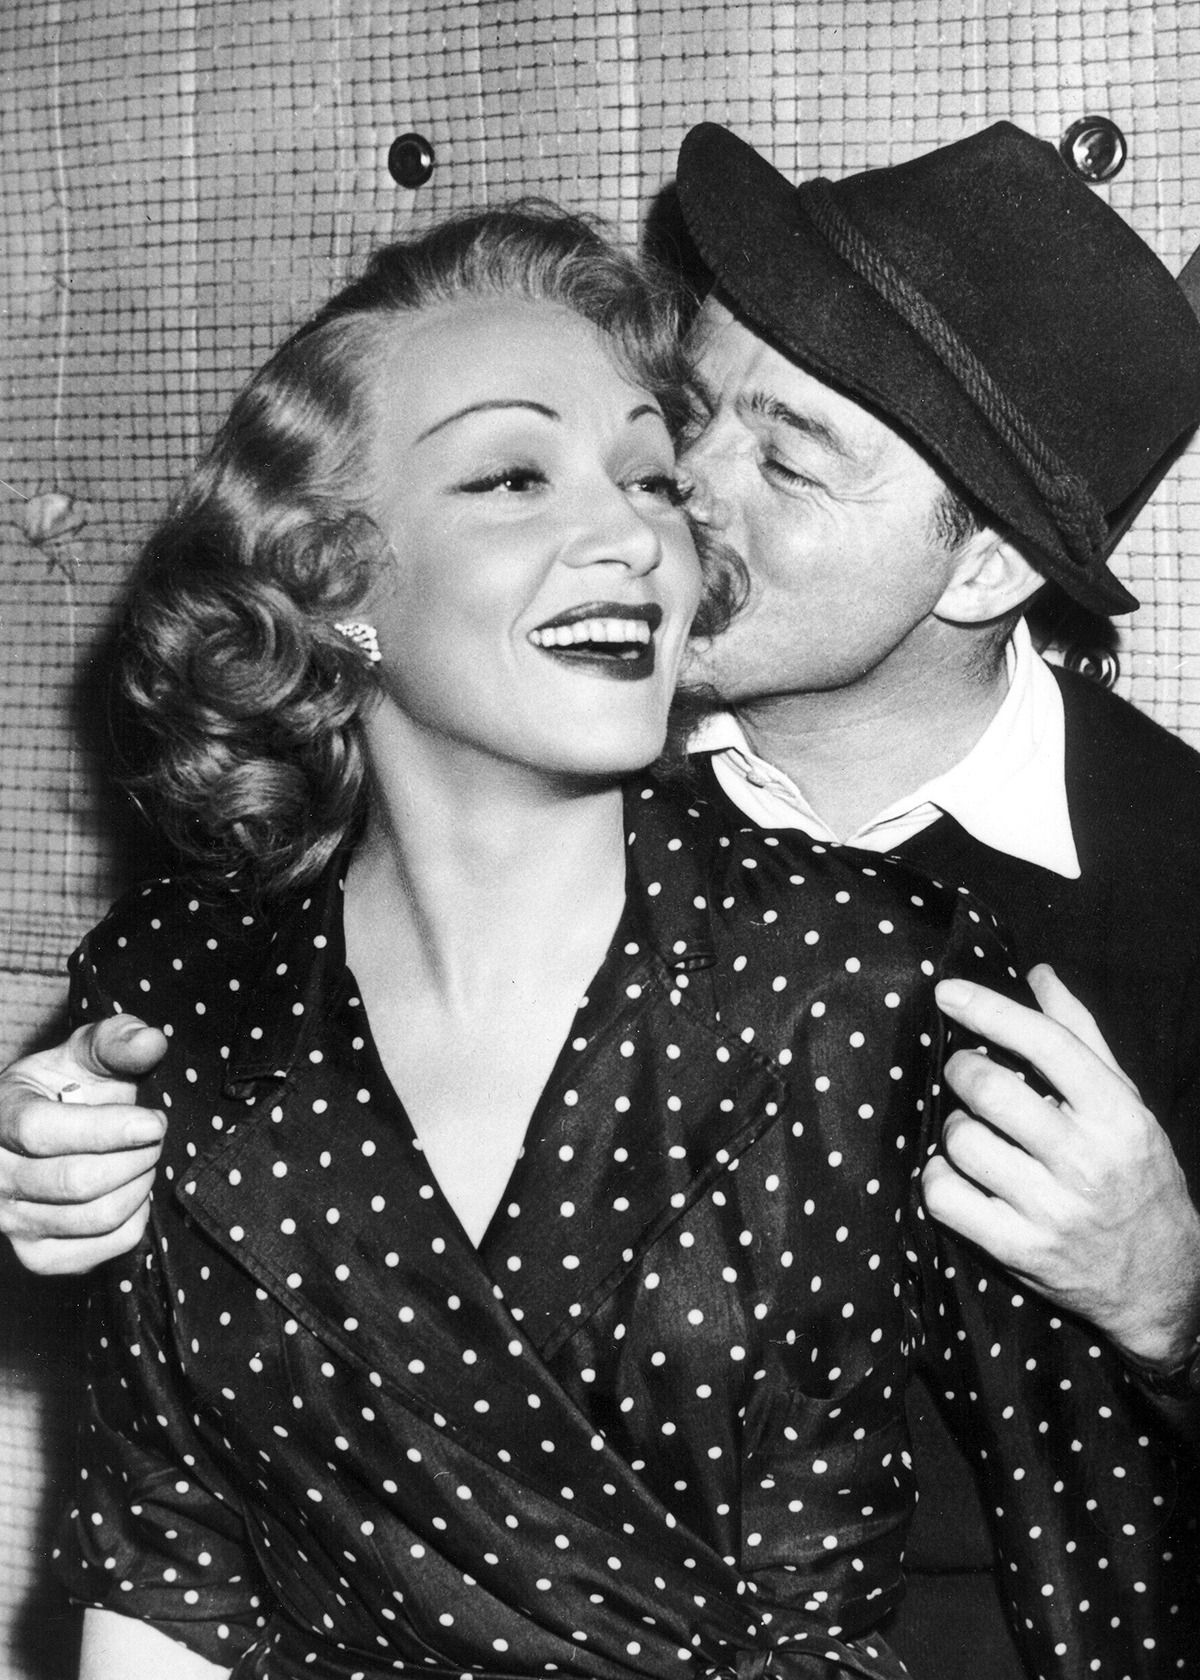 BILLY WILDER & MARLENE DIETRICH - 1948